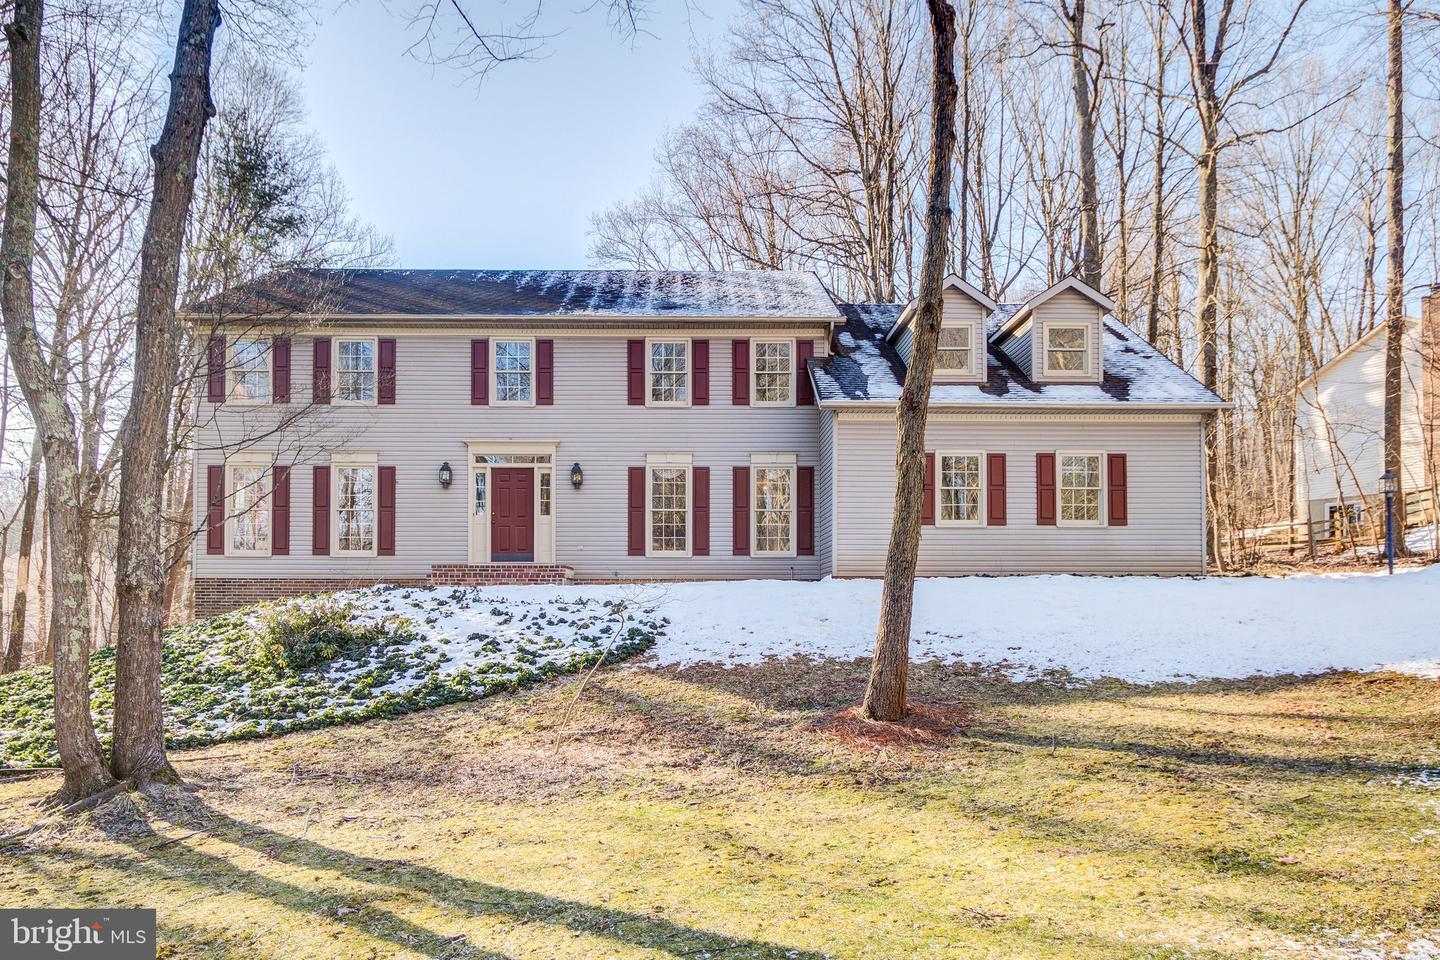 5403 Nuthatch Court in Warrenton, VA Home for Sale